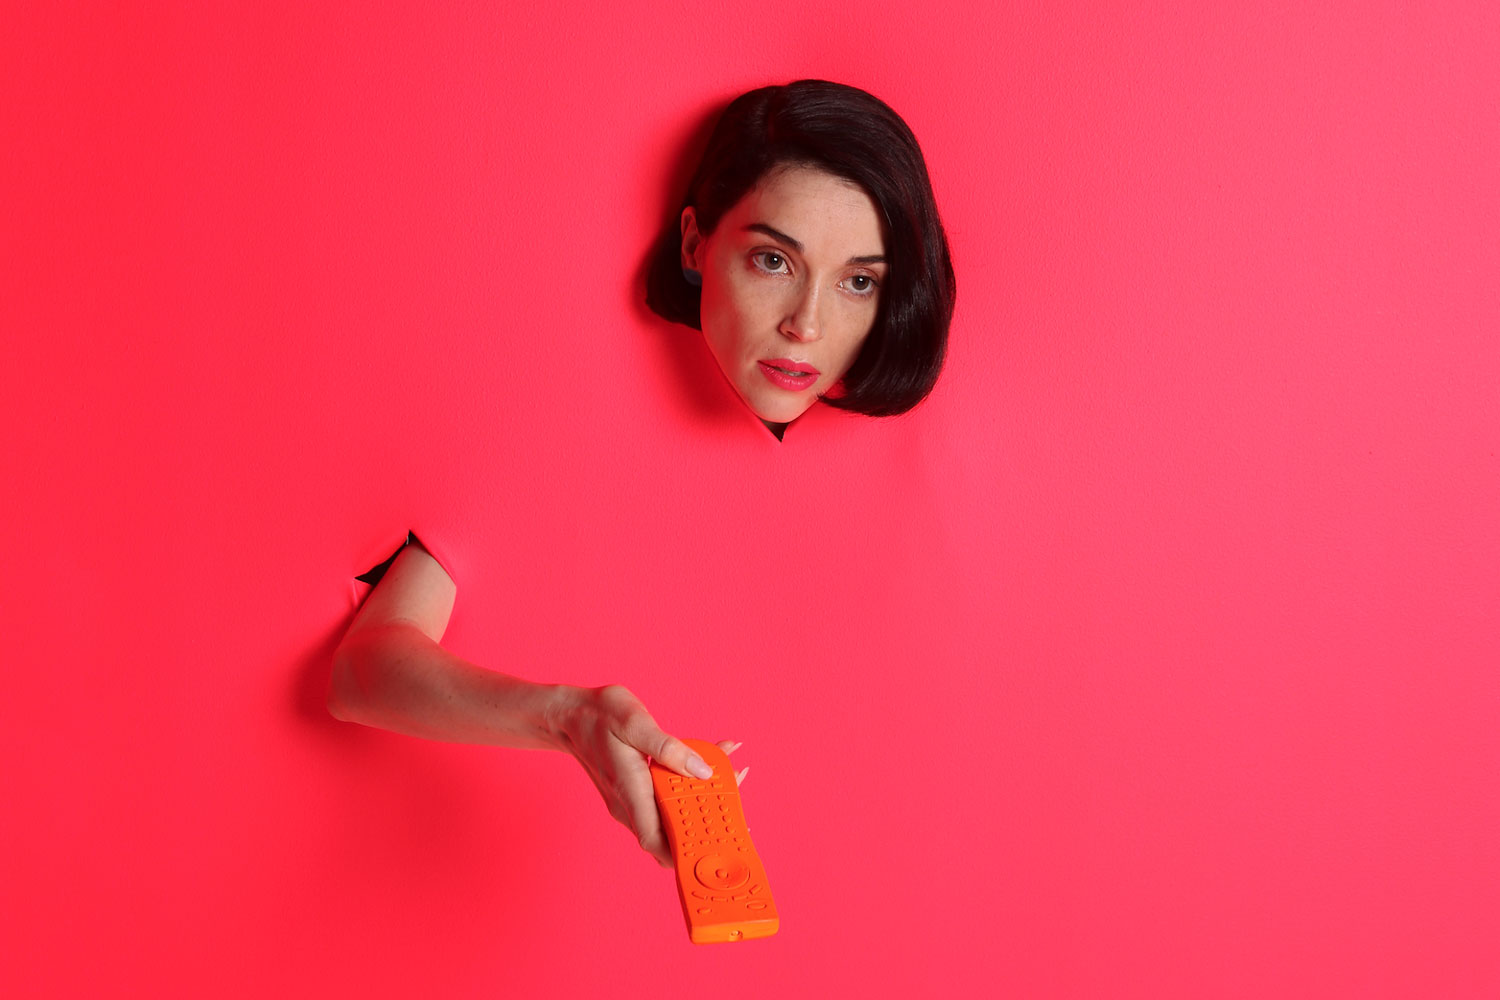 st vincent august 2017 Producer of the Year Jack Antonoff on Why You Cant Fake Success